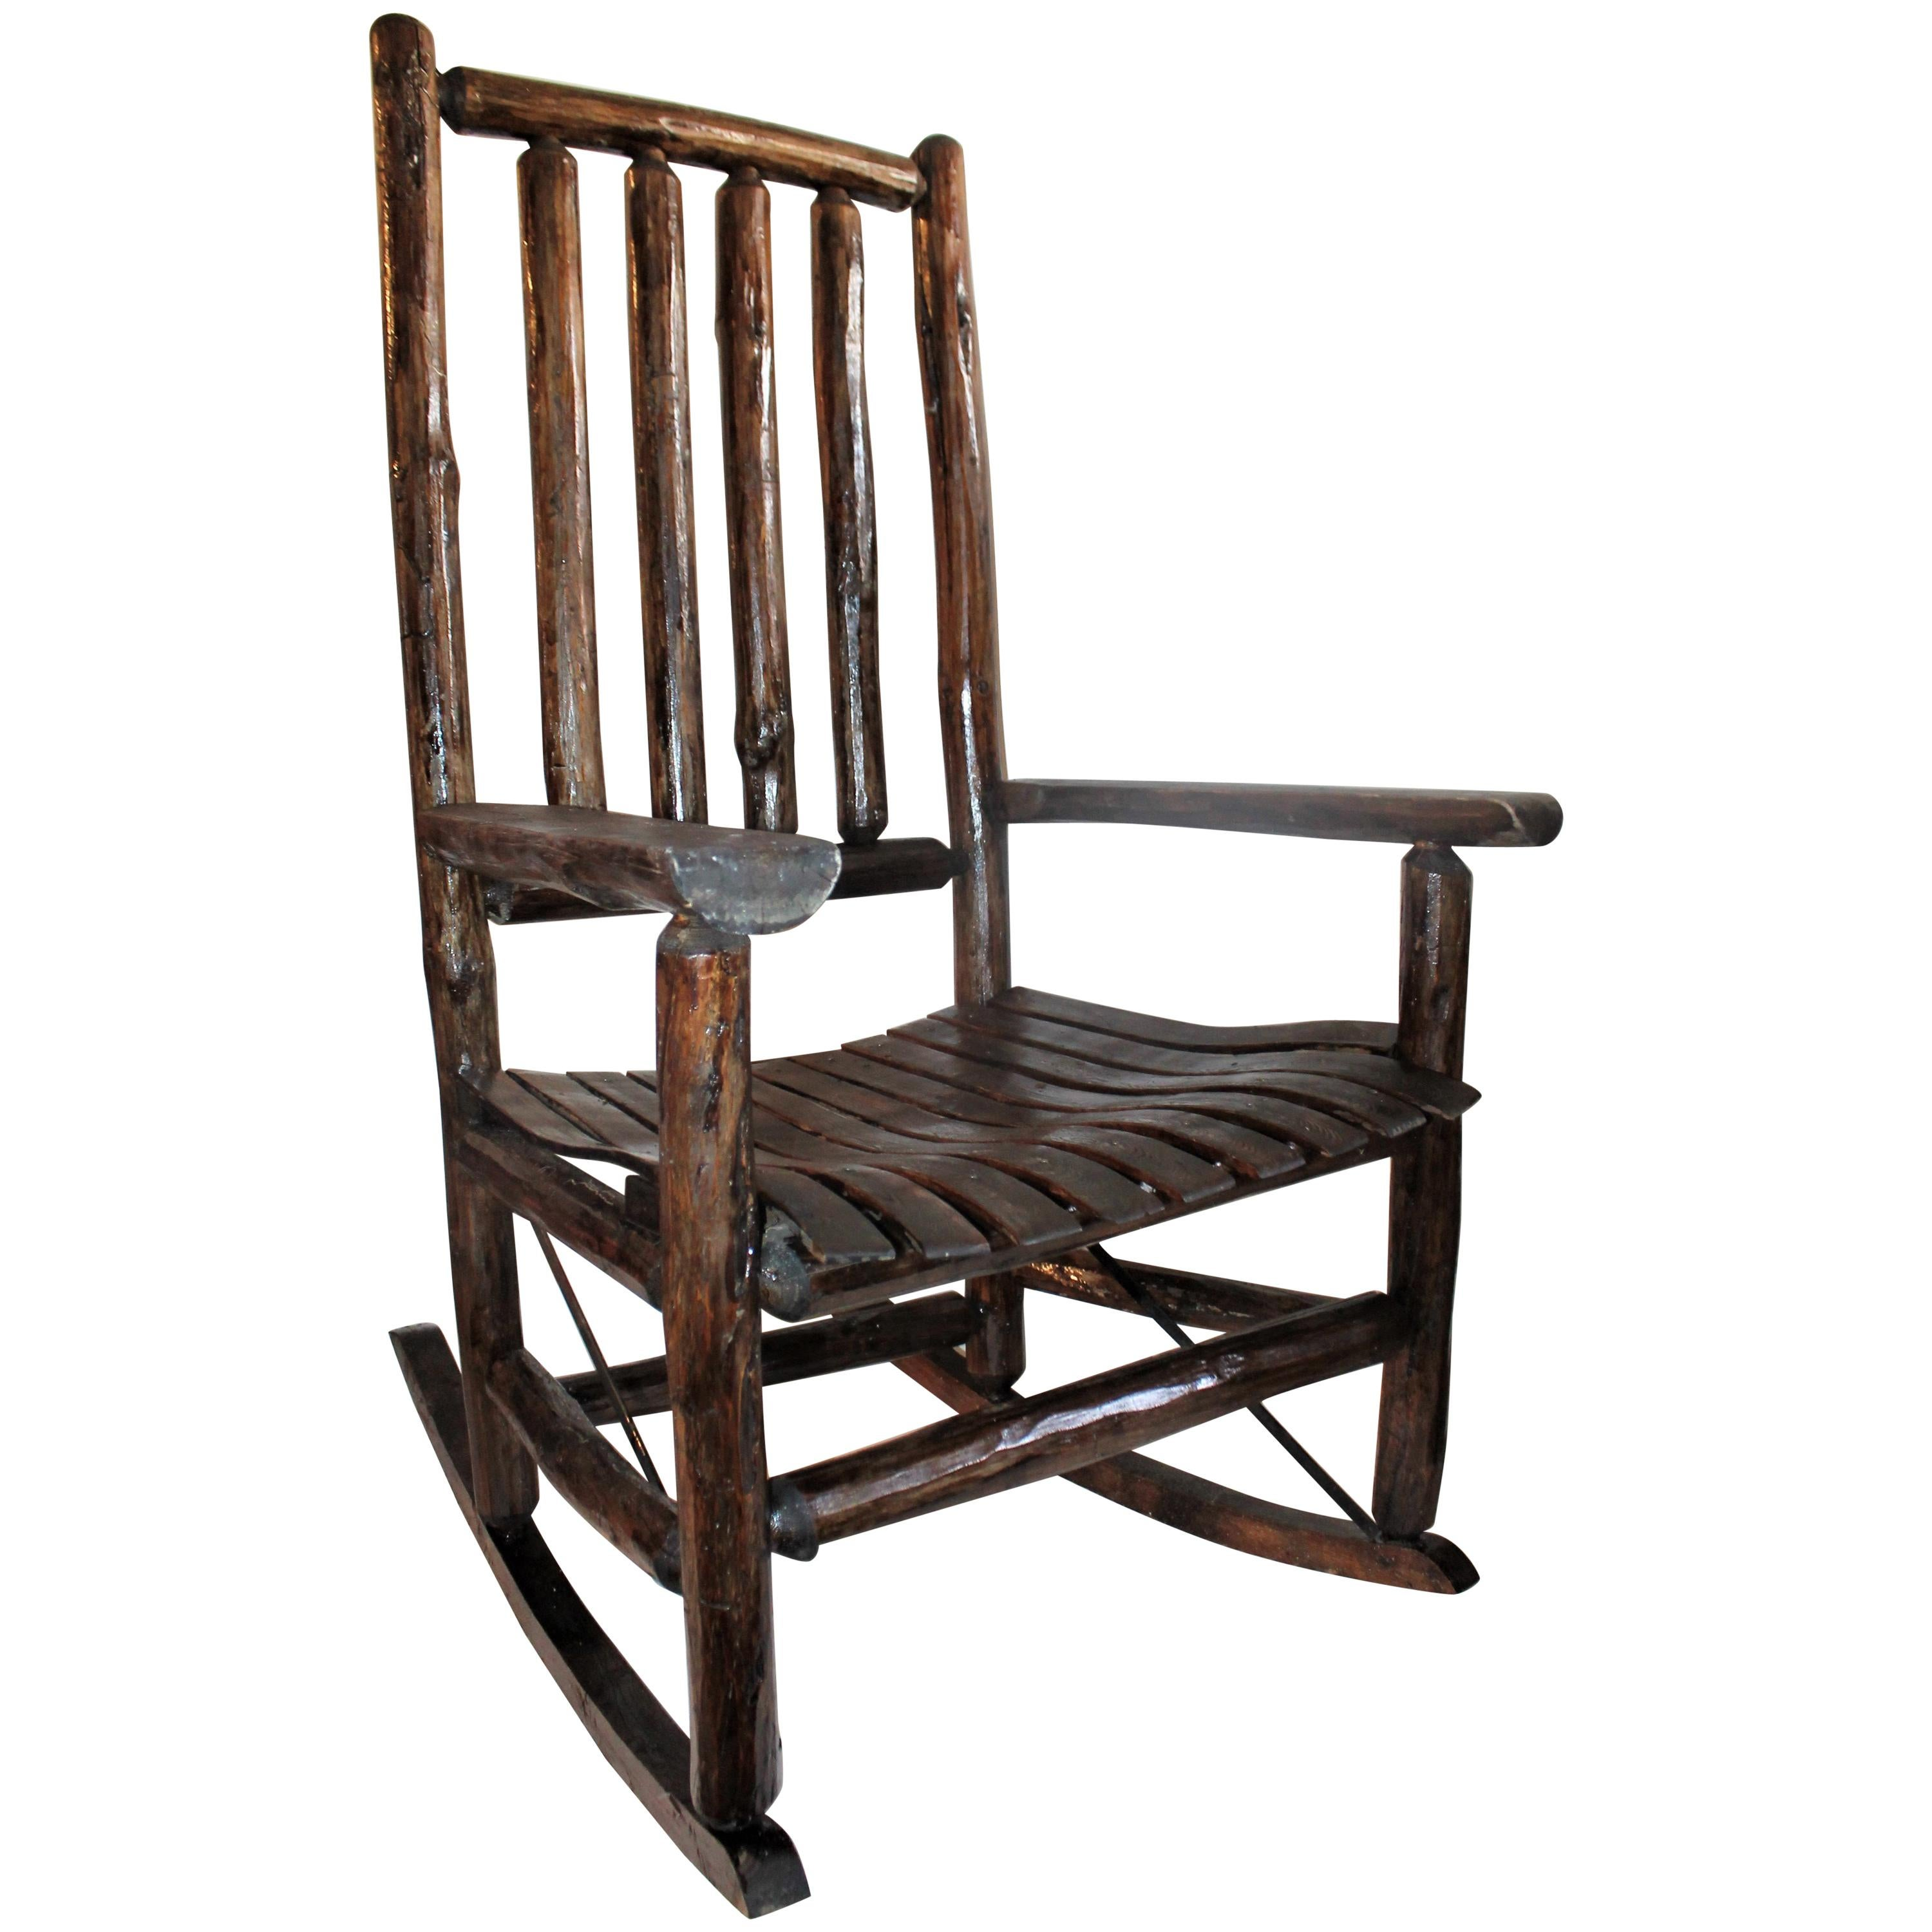 Best Place To Buy Rocking Chairs Old Hickory Porch Rocking Chair